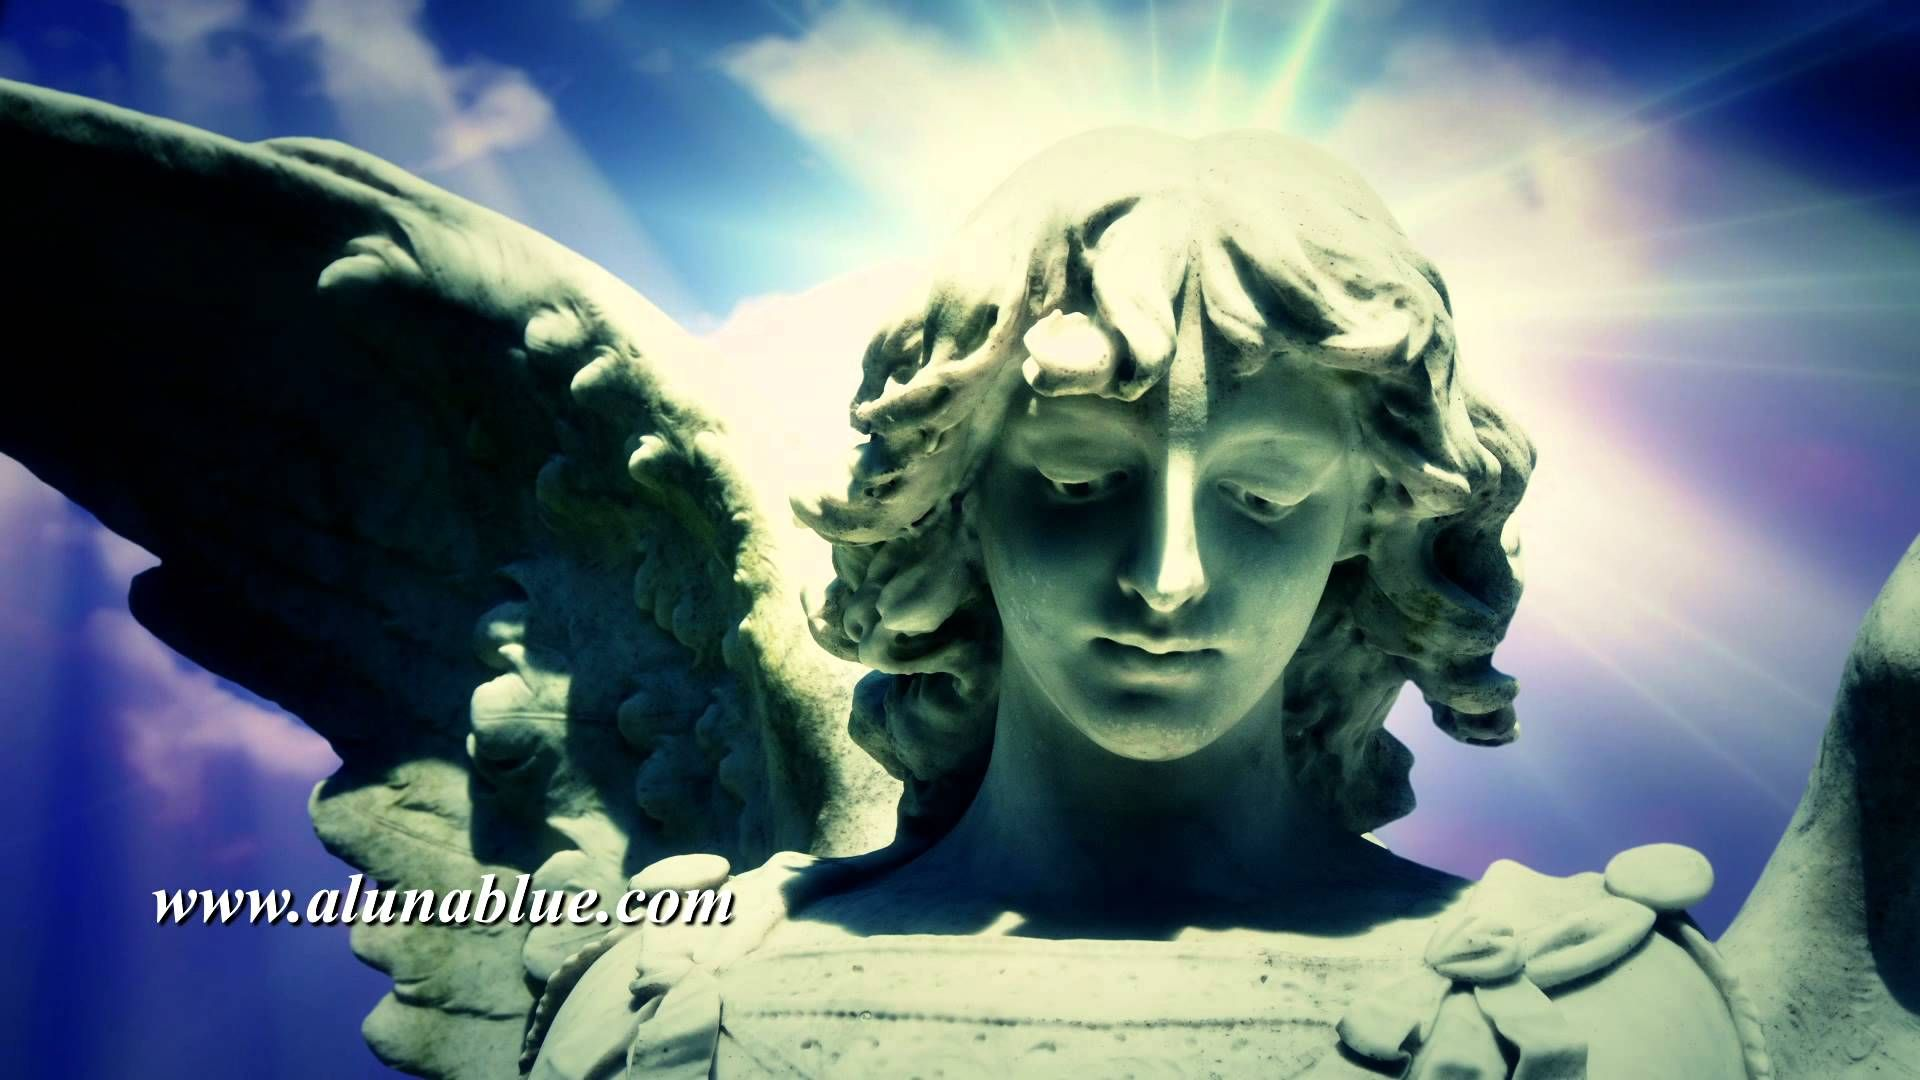 Stock Video - Stock Footage - Video Backgrounds - Angels 0111